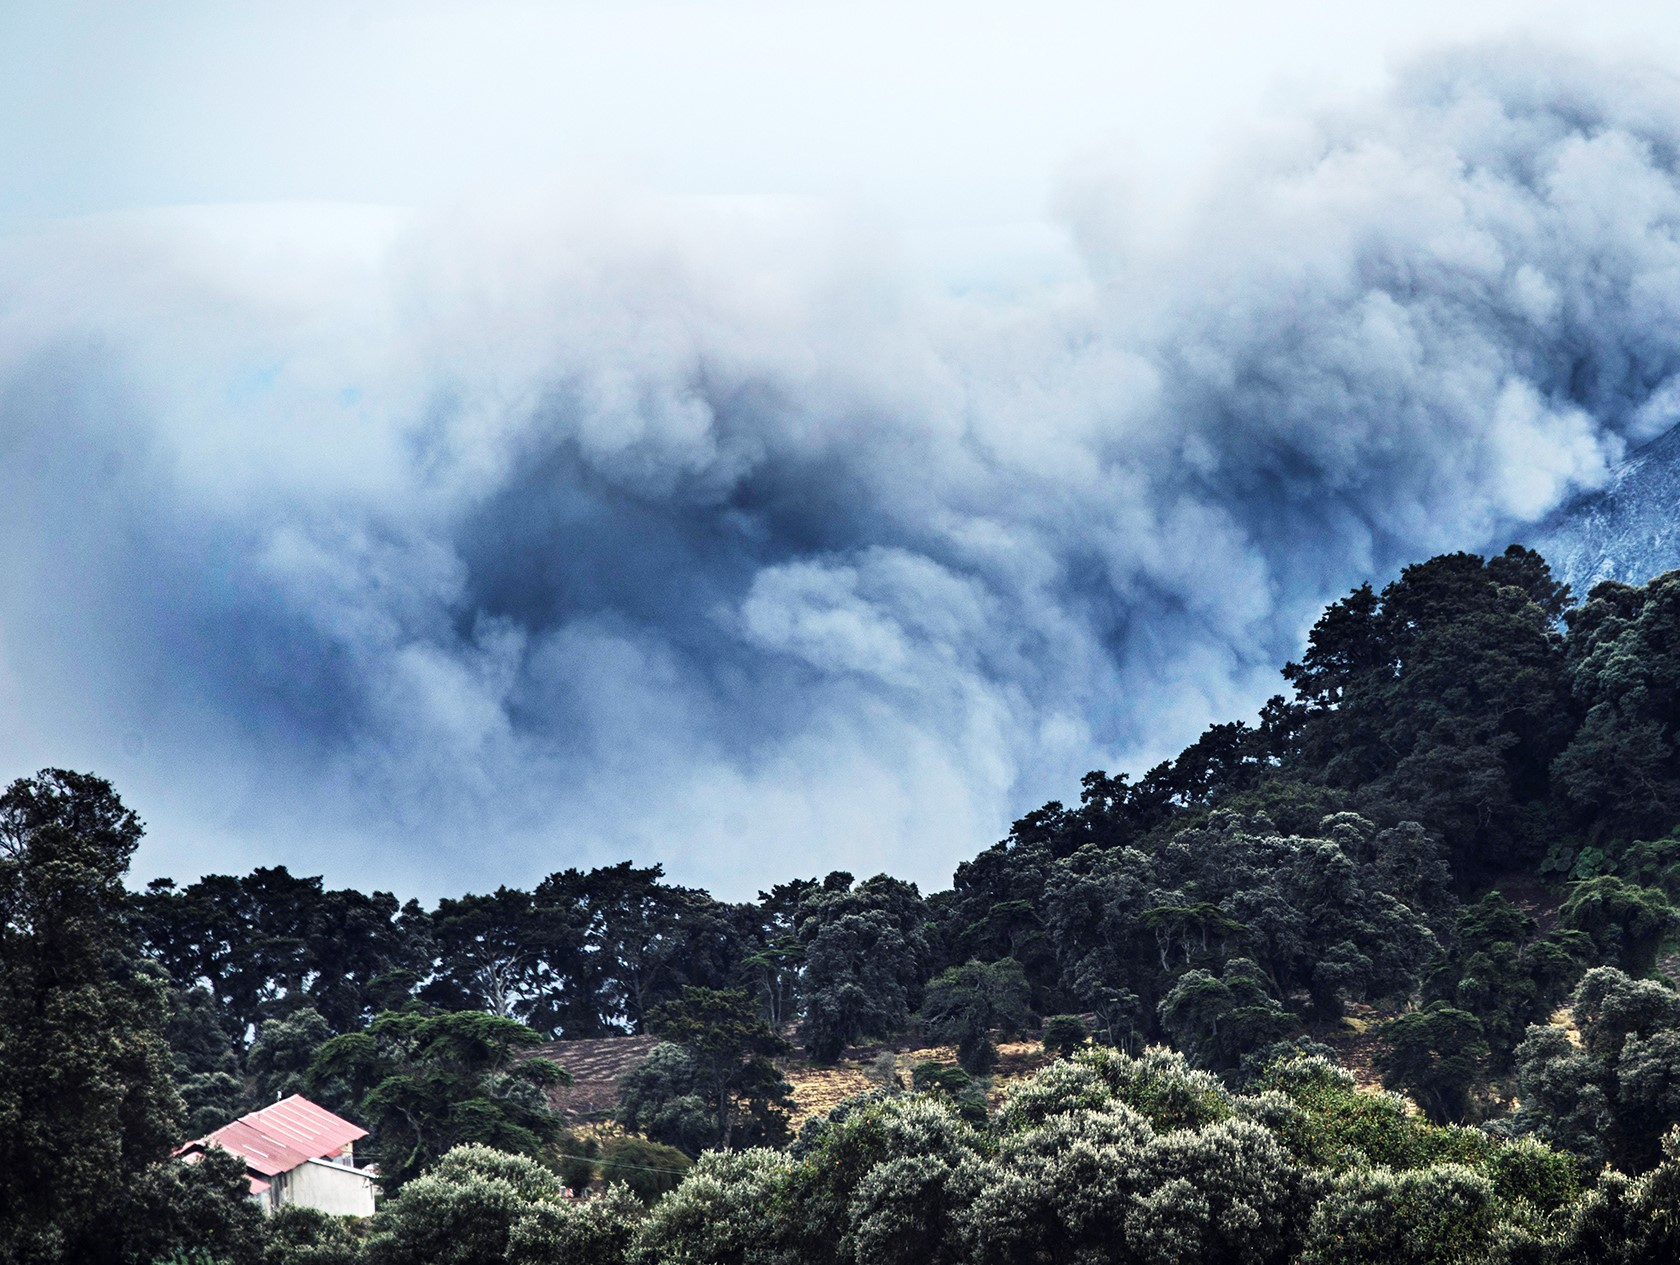 View of the Turrialba volcano on September 20, 2016 in Cartago, 46 km from San Jose.  The Costa Rican authorities suspended operations at the country's main airport Monday after the nearby Turrialba volcano erupted, sending a thick ash cloud into the sky. Turrialba erupted twice Monday, first at dawn and again just before noon. The second eruption sent an ash cloud 4,000 meters  / AFP / Ezequiel Becerra        (Photo credit should read EZEQUIEL BECERRA/AFP/Getty Images)